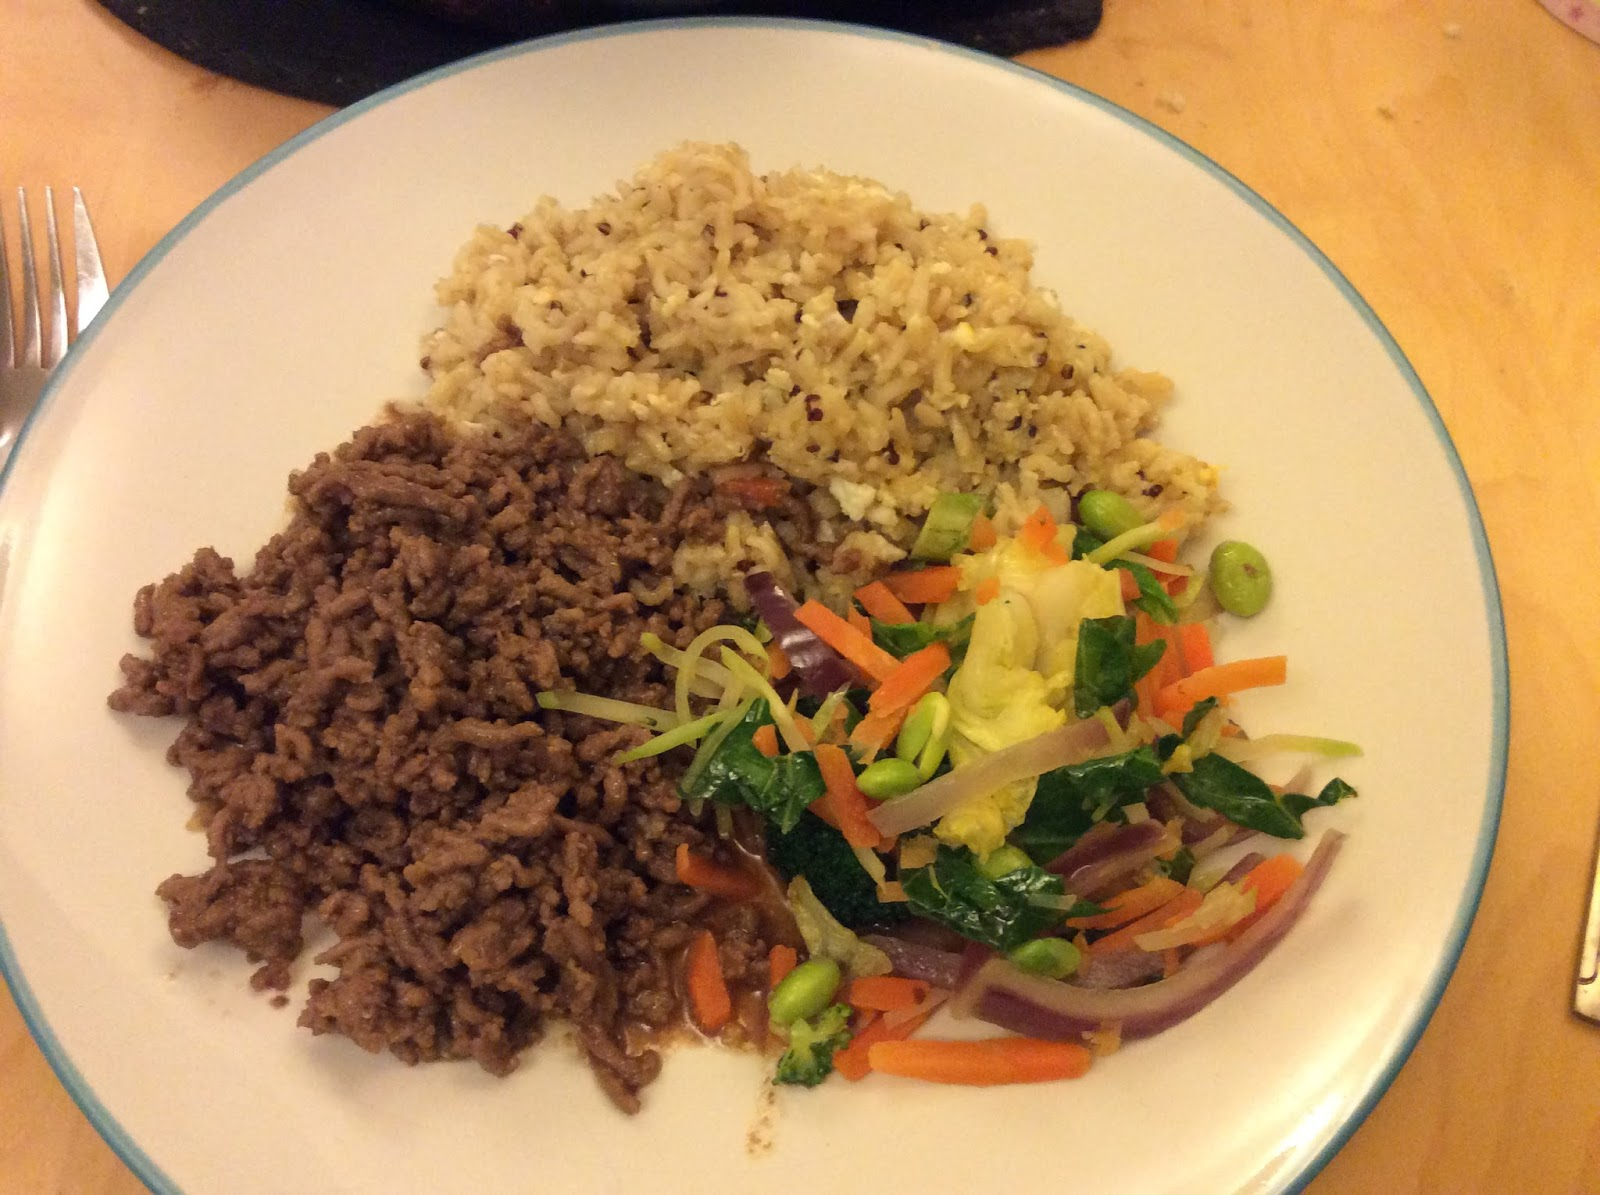 korean beef bowl, stir fried vegetables, brown rice and quinoa